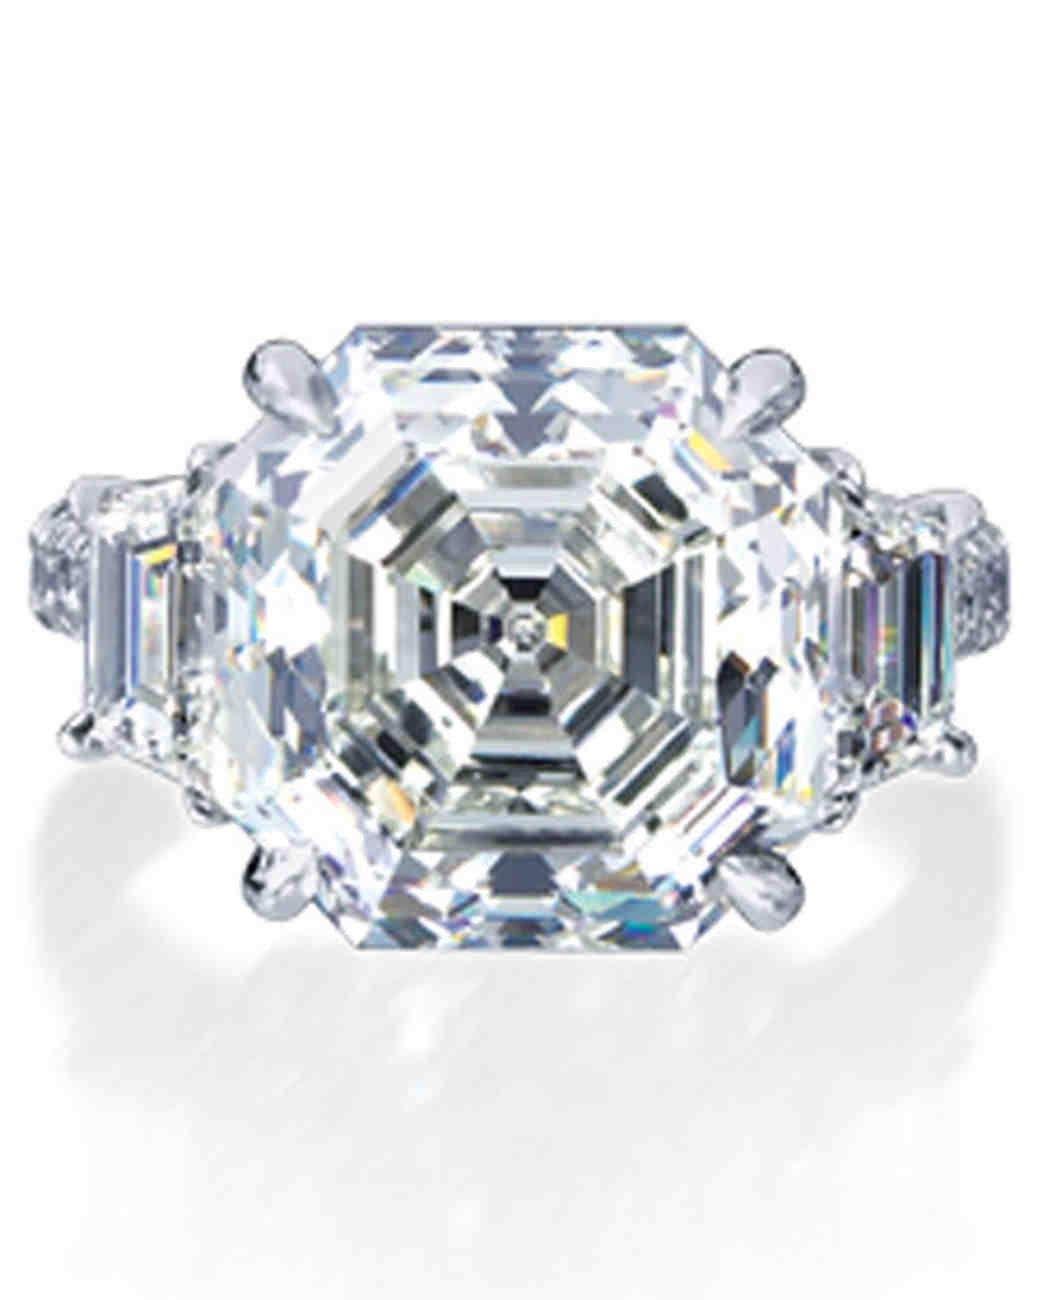 mw_0110_royalasscher_decosimilar.jpg